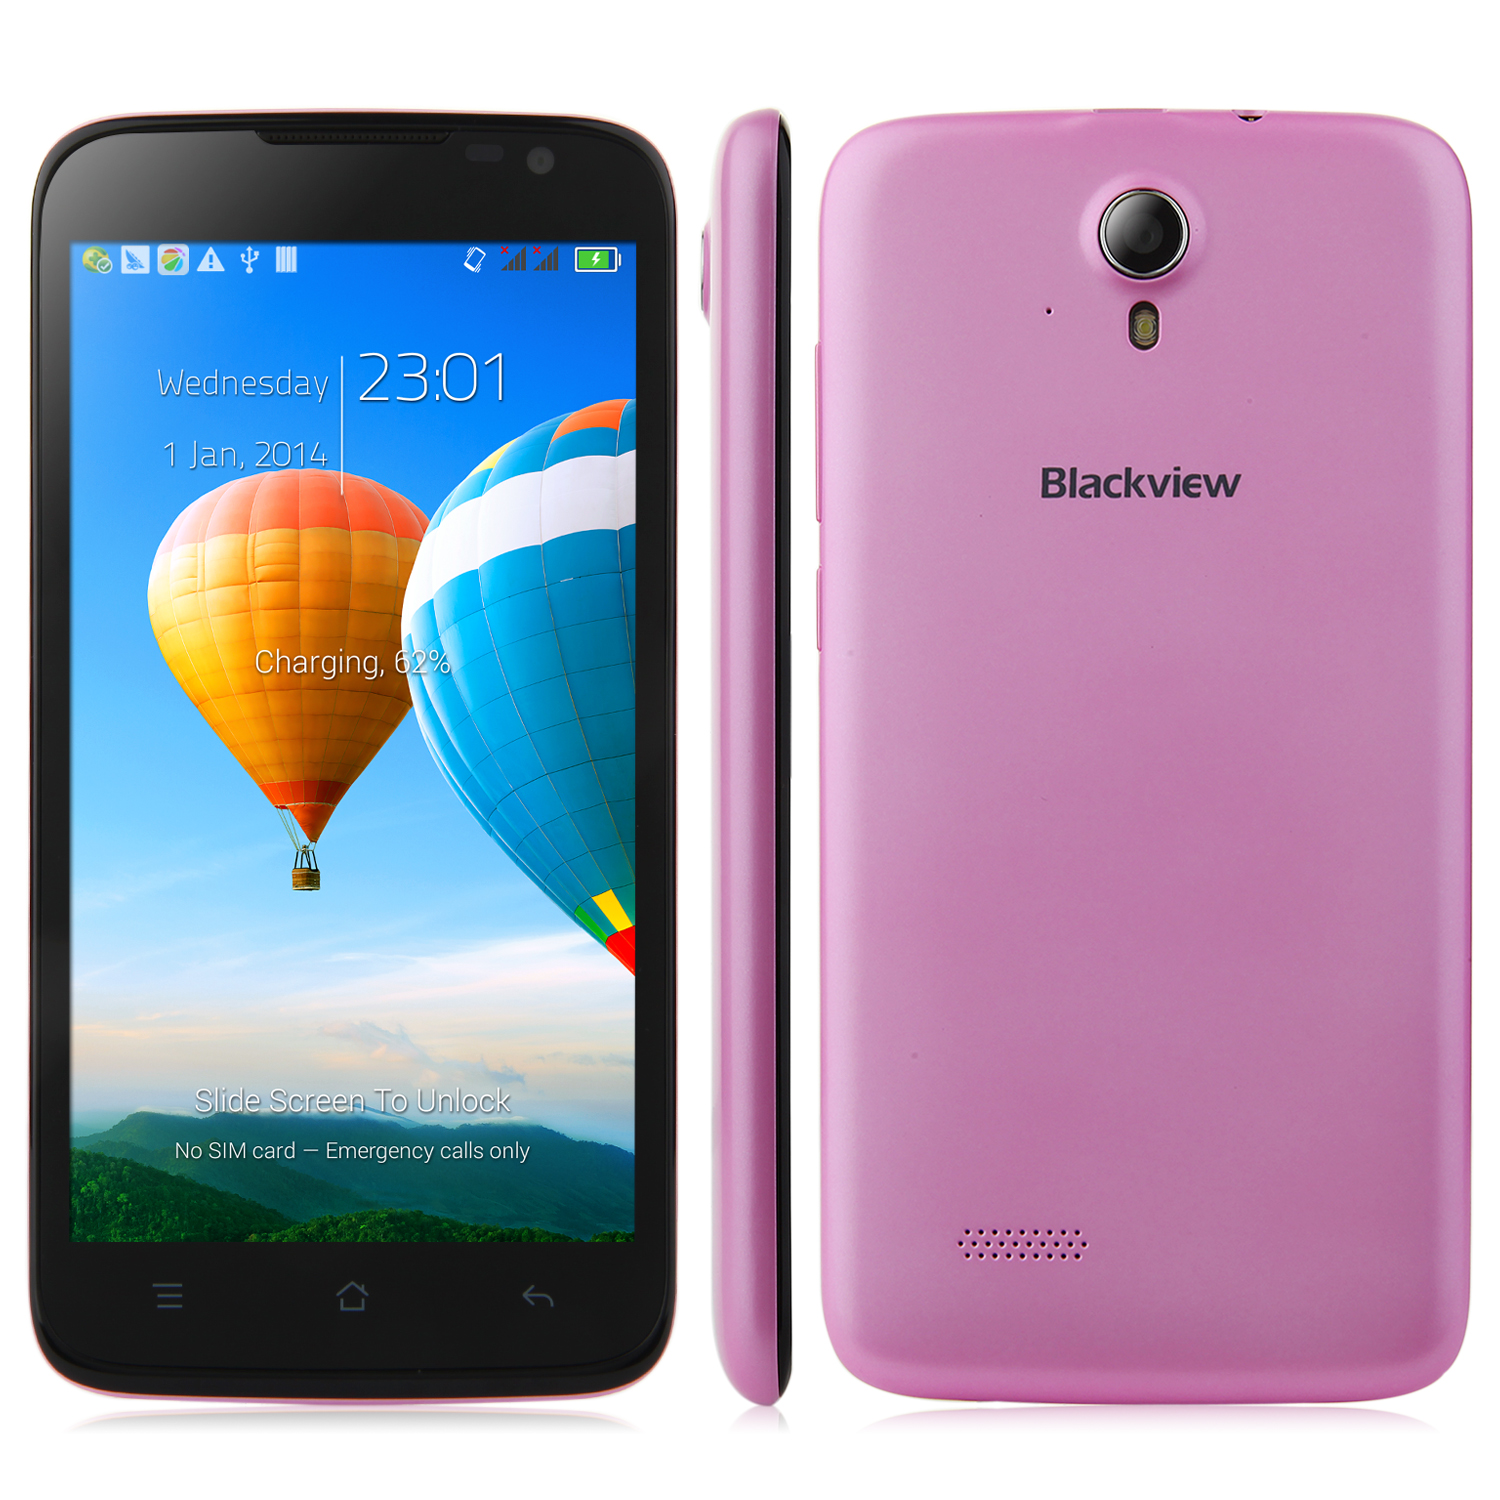 BlackView Zeta V16 Smartphone 5.0 Inch HD MTK6592M Octa Core Android 4.4 1GB 8GB Pink